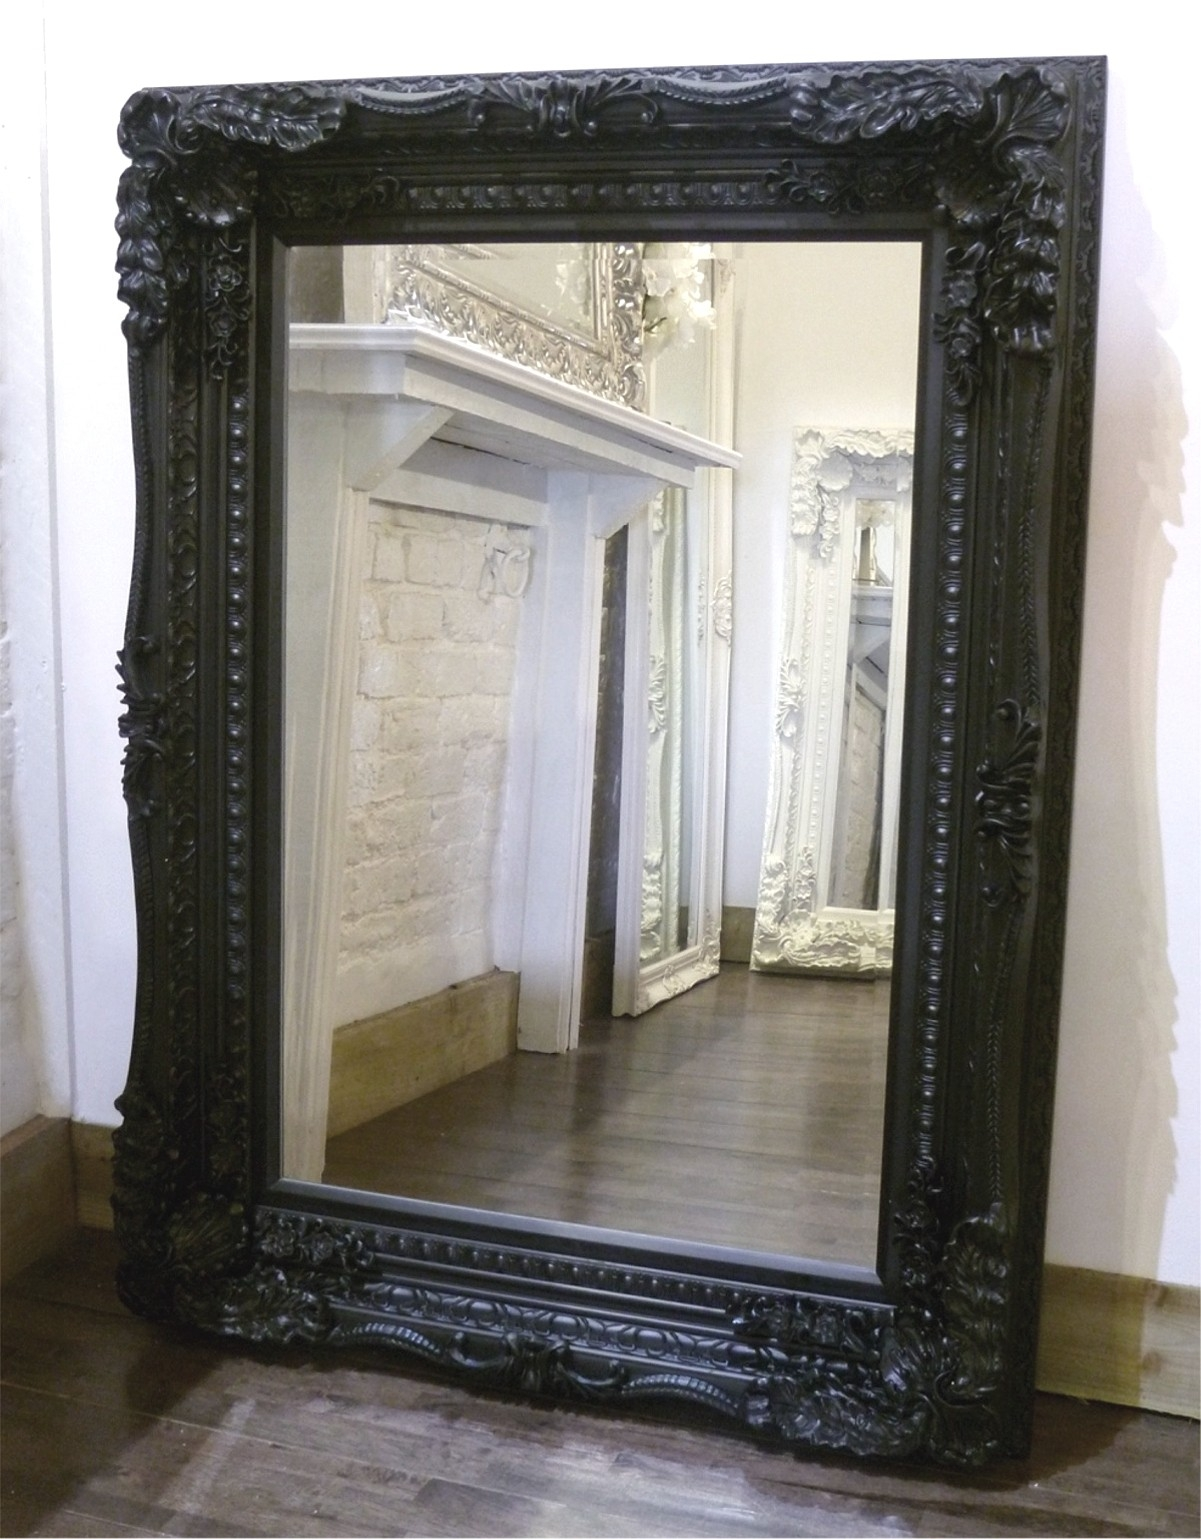 The Best Value Black Chelsea Ornate Mirrors Online Intended For Black Ornate Mirrors (Image 11 of 15)